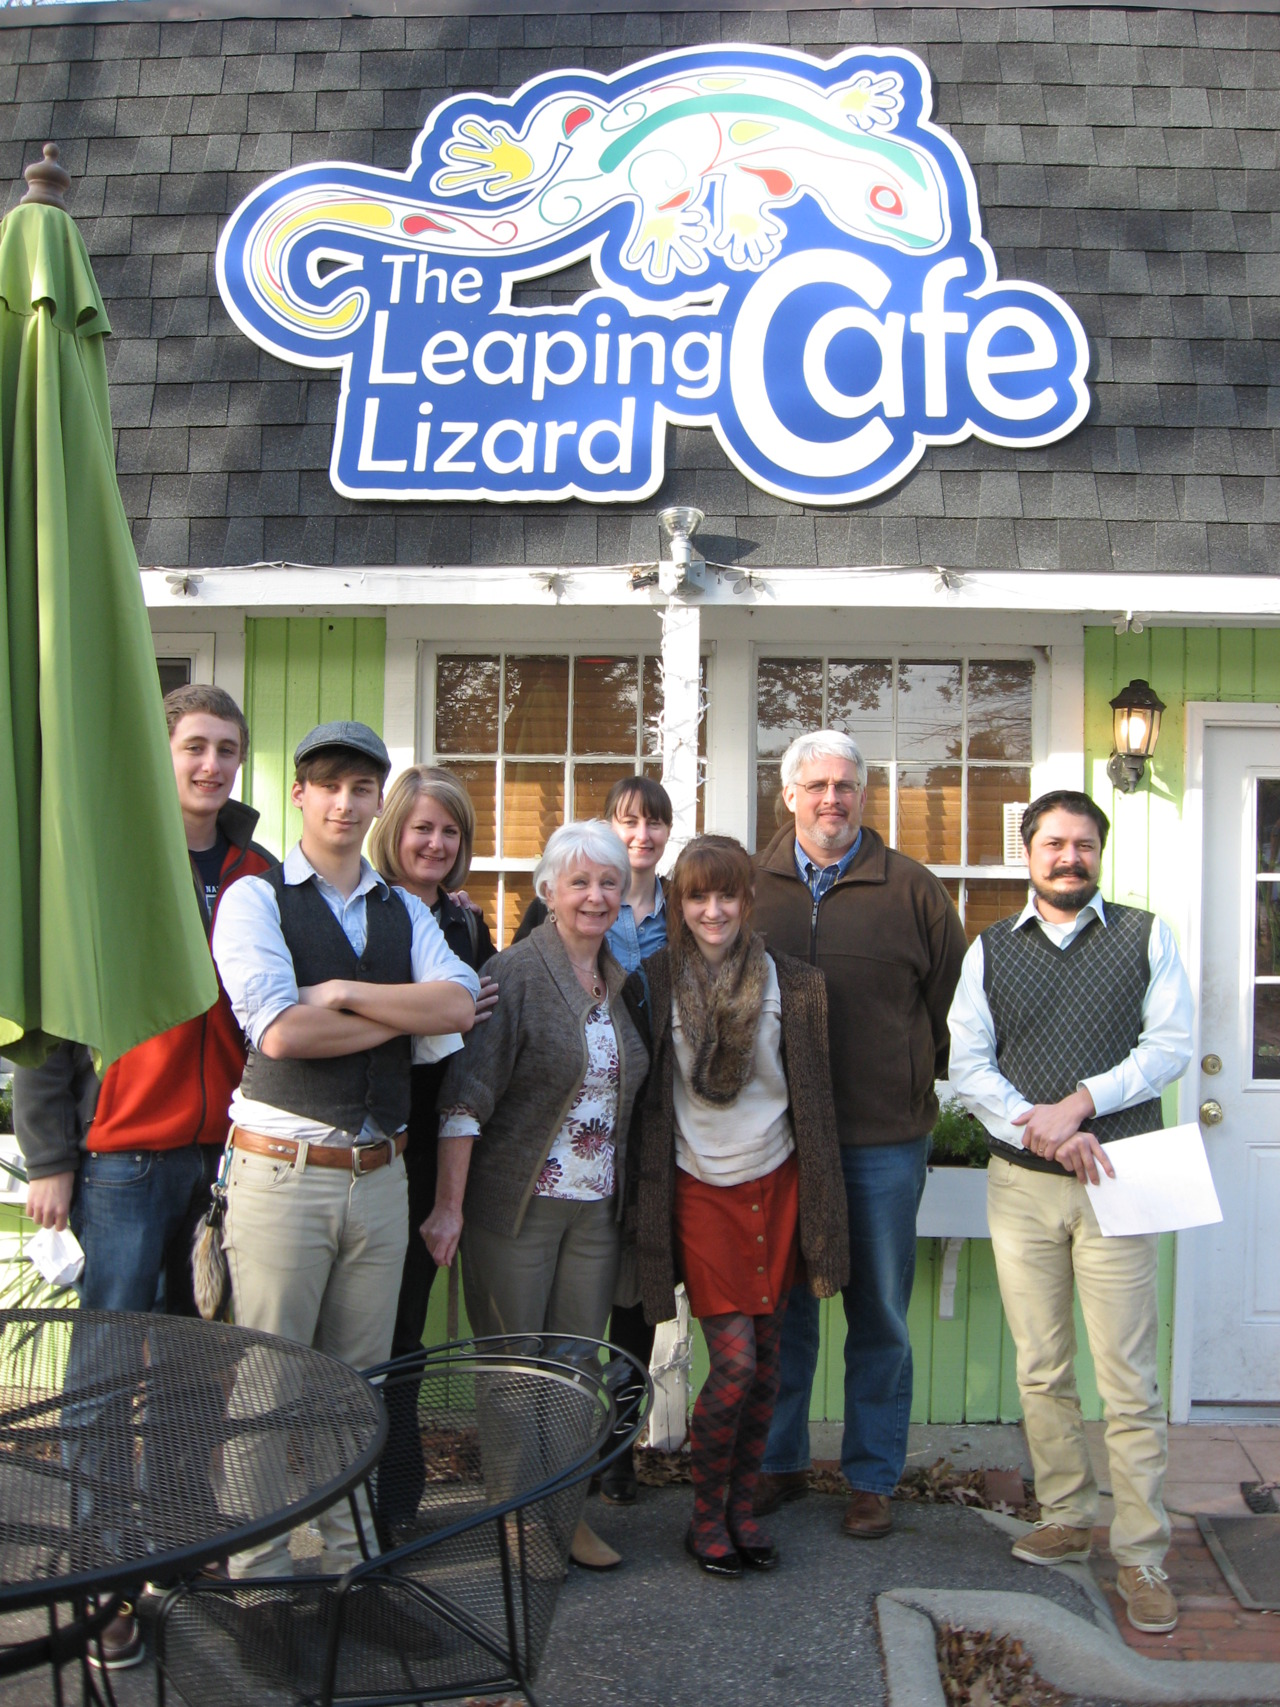 I am behind in posting holiday photos. Here is one with us at Leaping Lizard Cafe in Virginia Beach, VA.